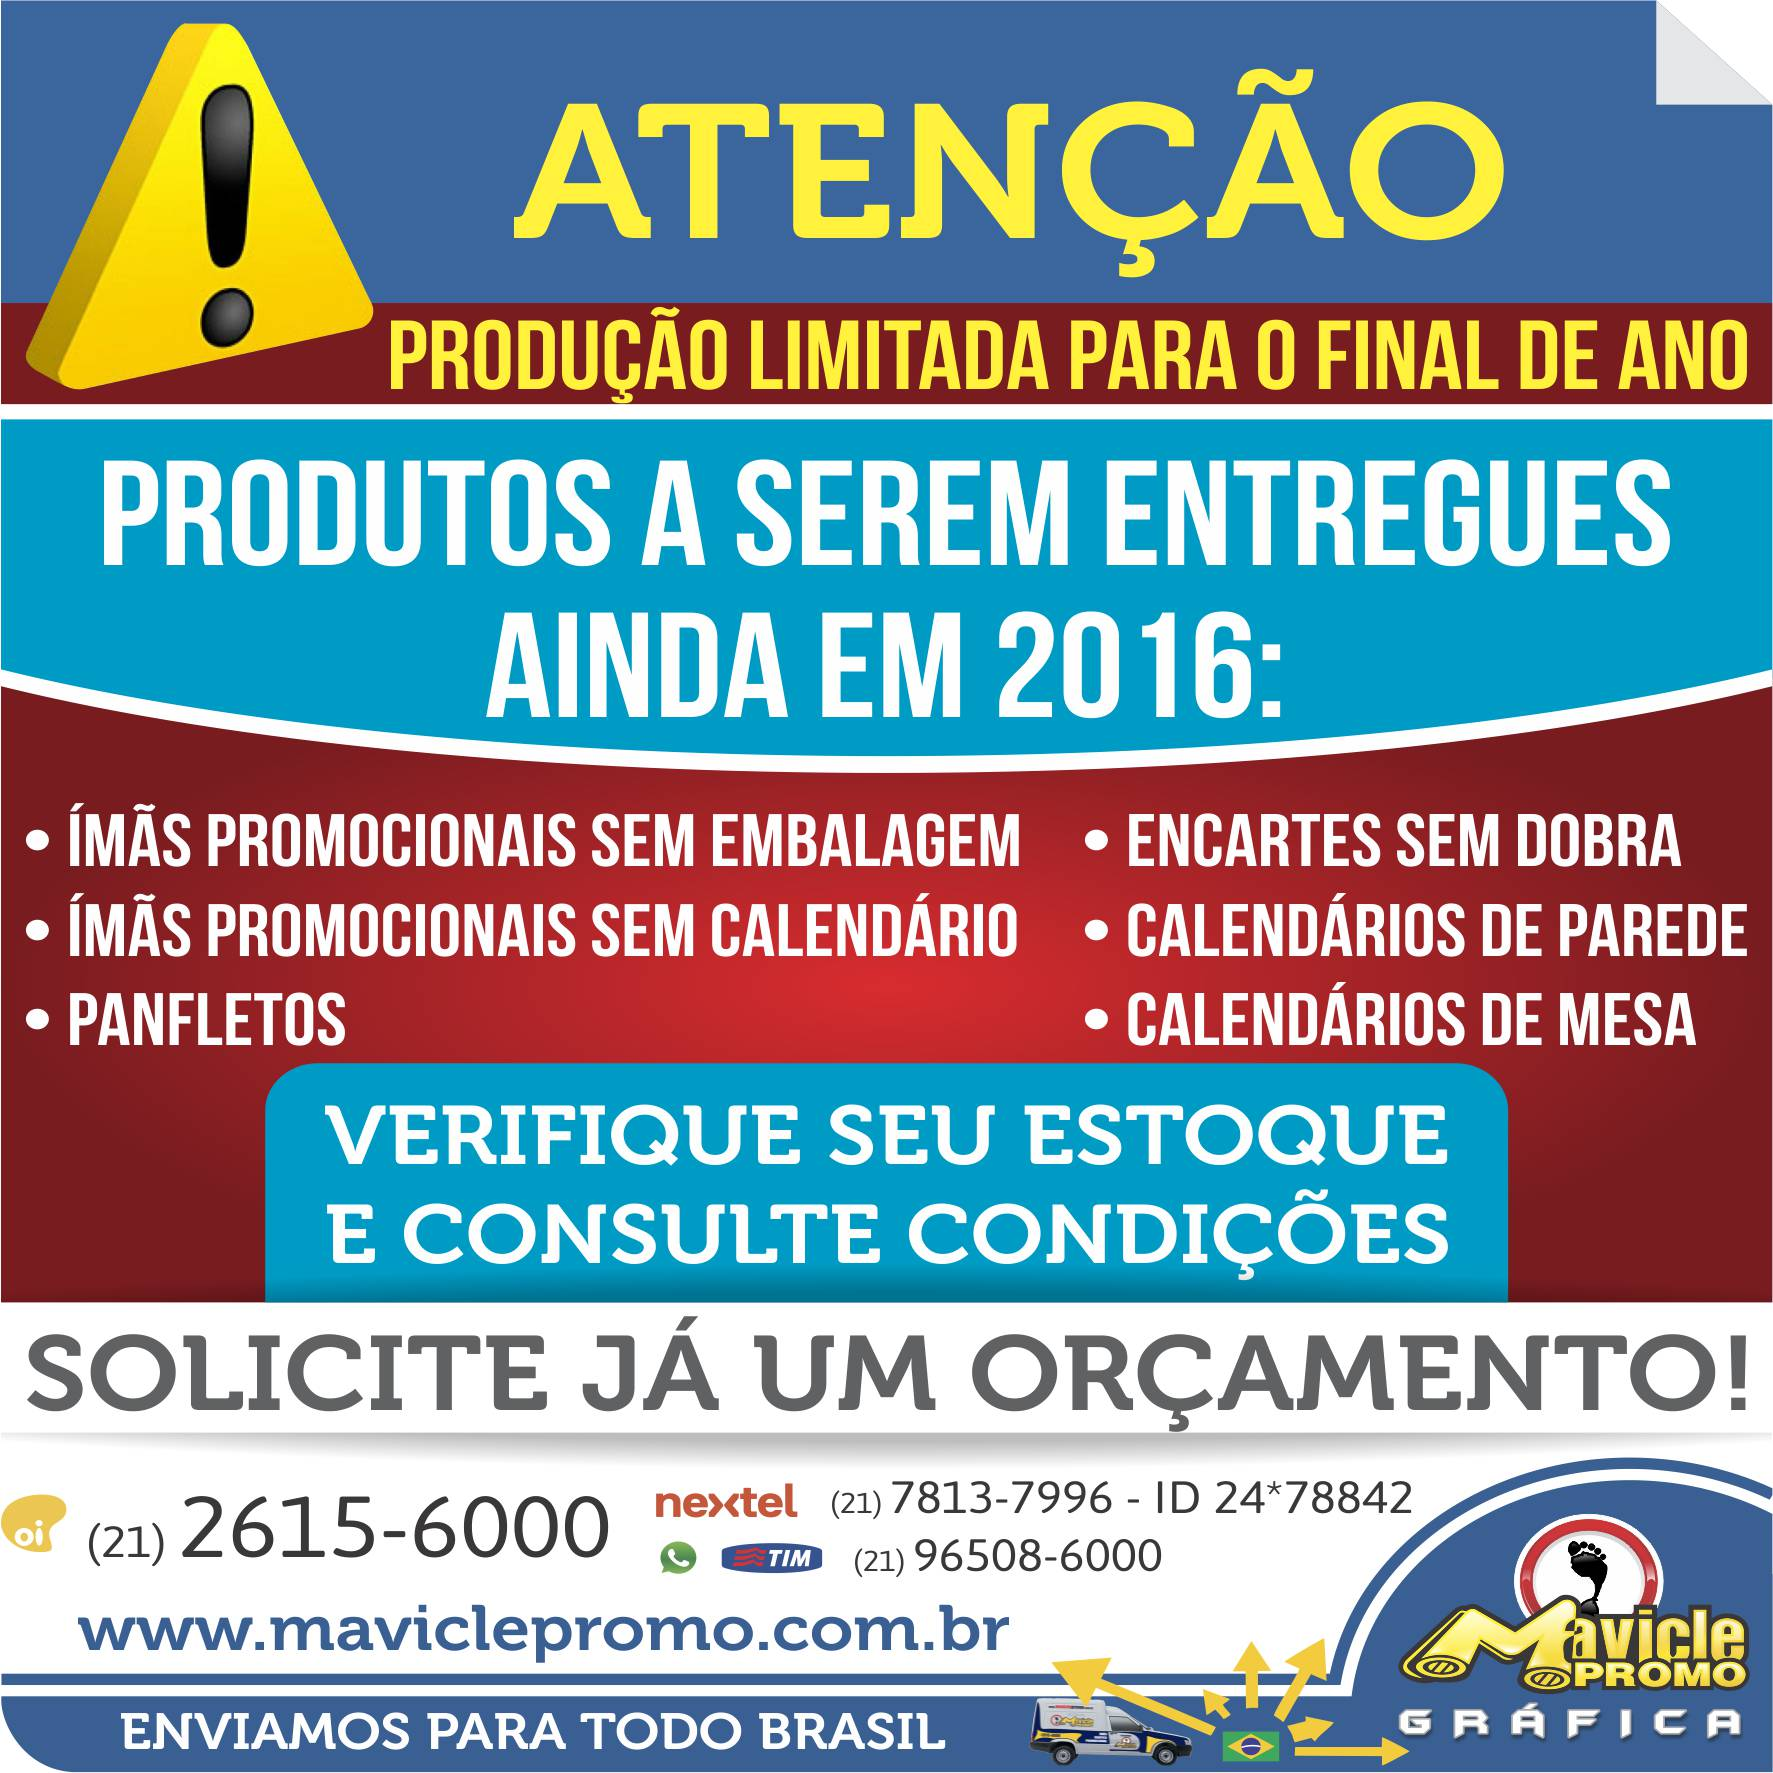 producao-final-de-ano-mavicle